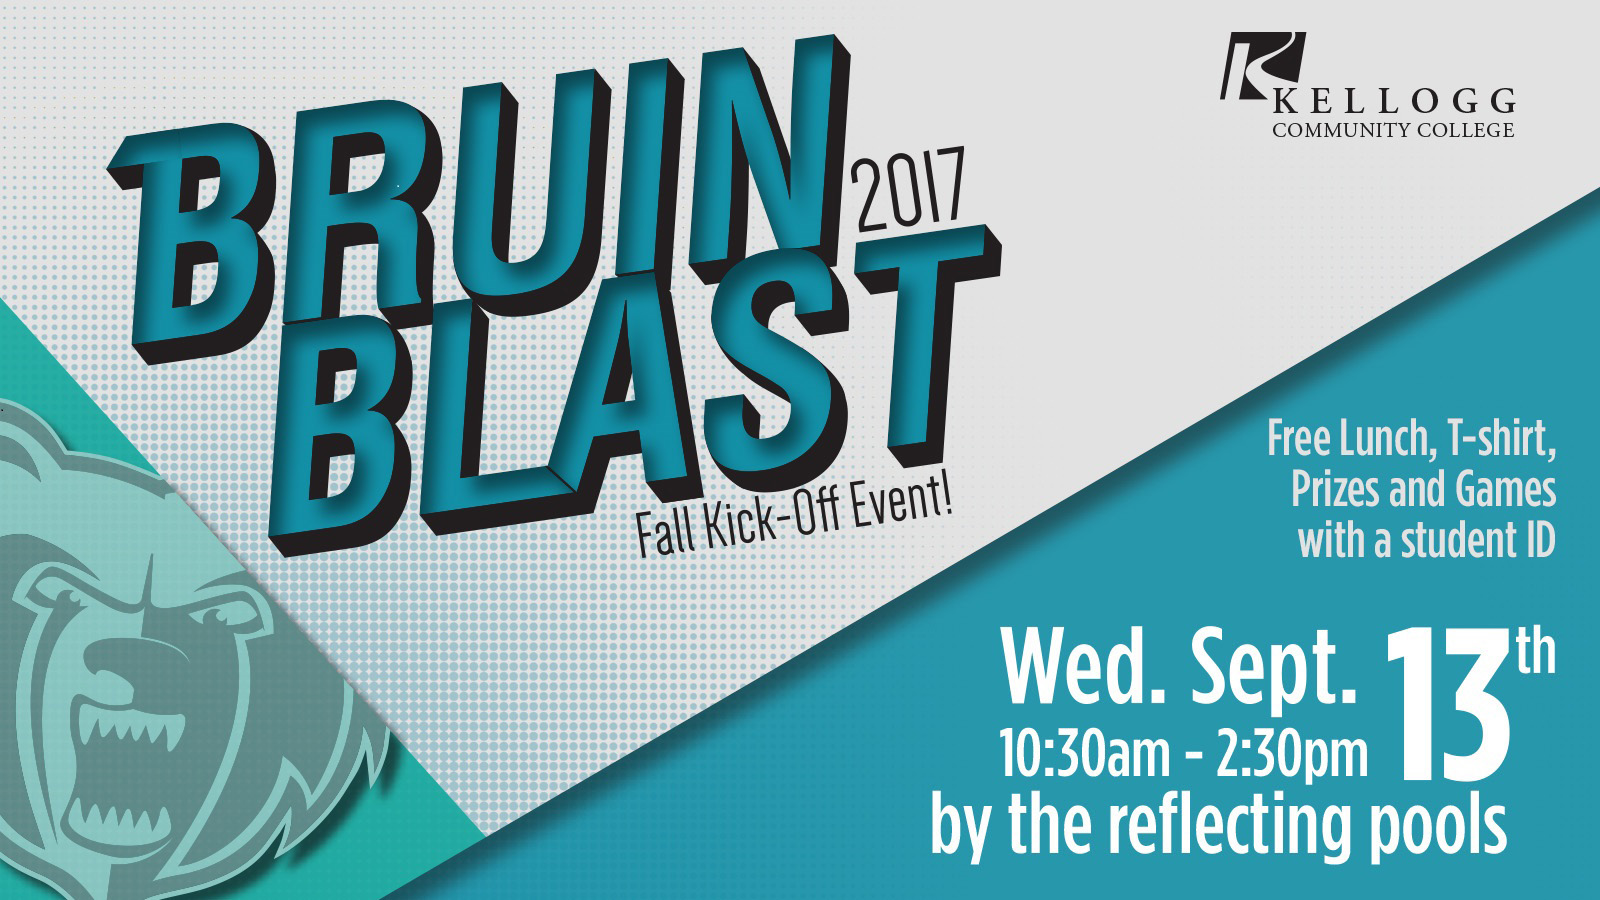 A text slide promoting Bruin Blast, KCC's fall welcome-back event for students, which will be held Sept. 13 on KCC's North Avenue campus in Battle Creek.